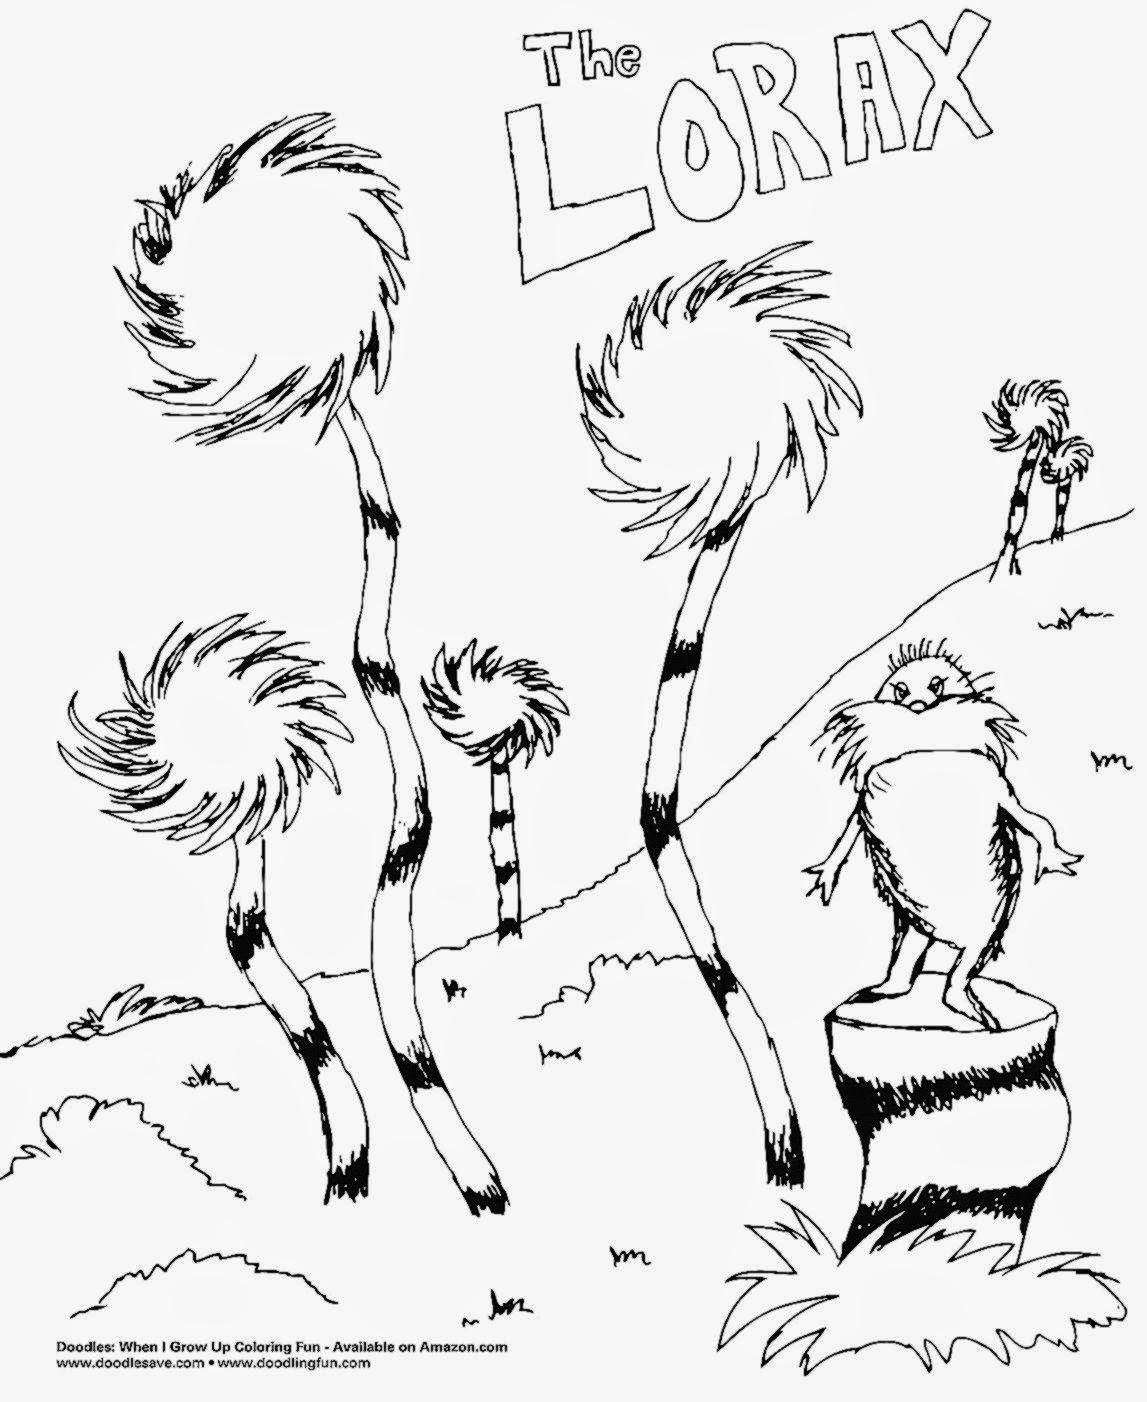 Adult Best The Lorax Coloring Page Gallery Images beauty the lorax coloring sheets free sheet tree colouring pages gallery images